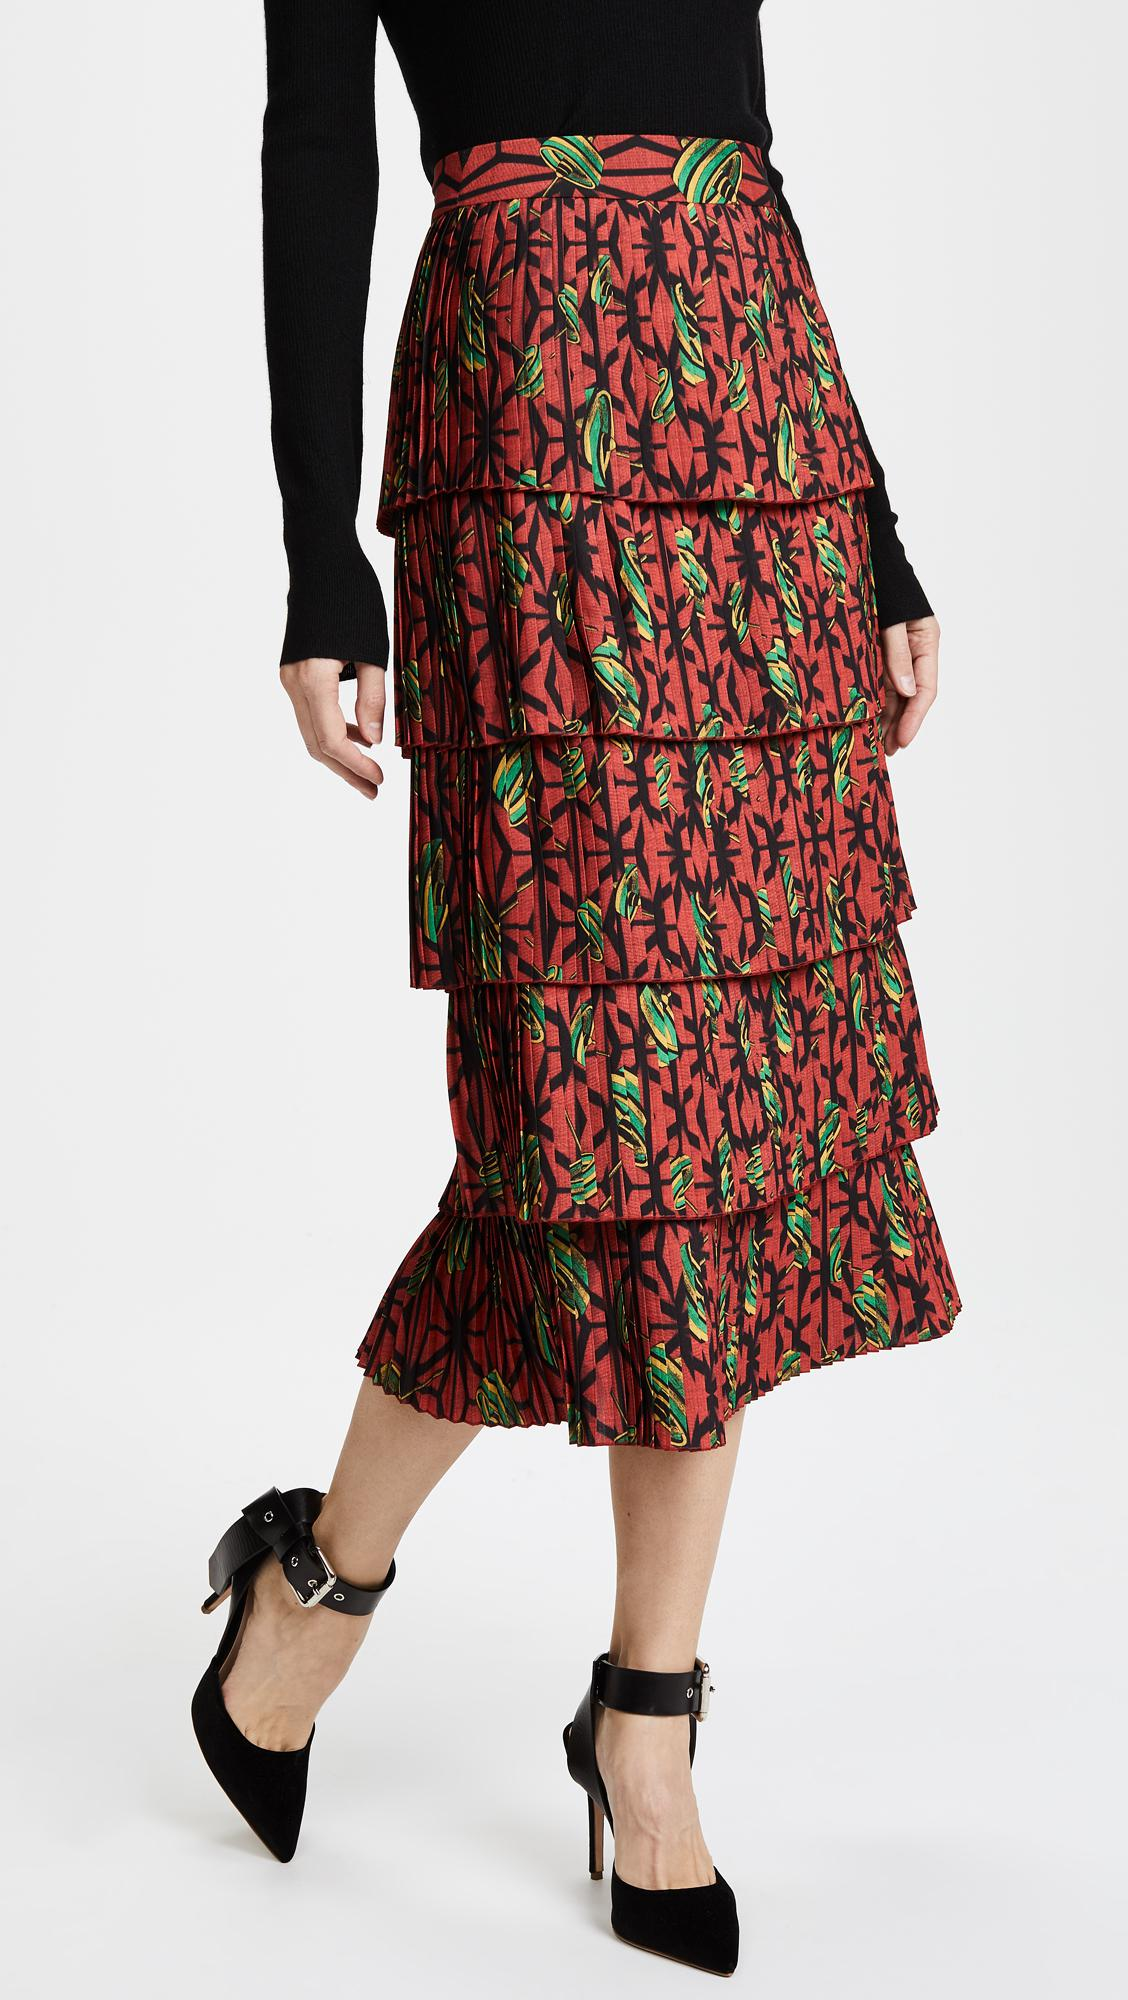 b513d62880 Lyst - Stella Jean Printed Pleated Tiered Skirt in Red